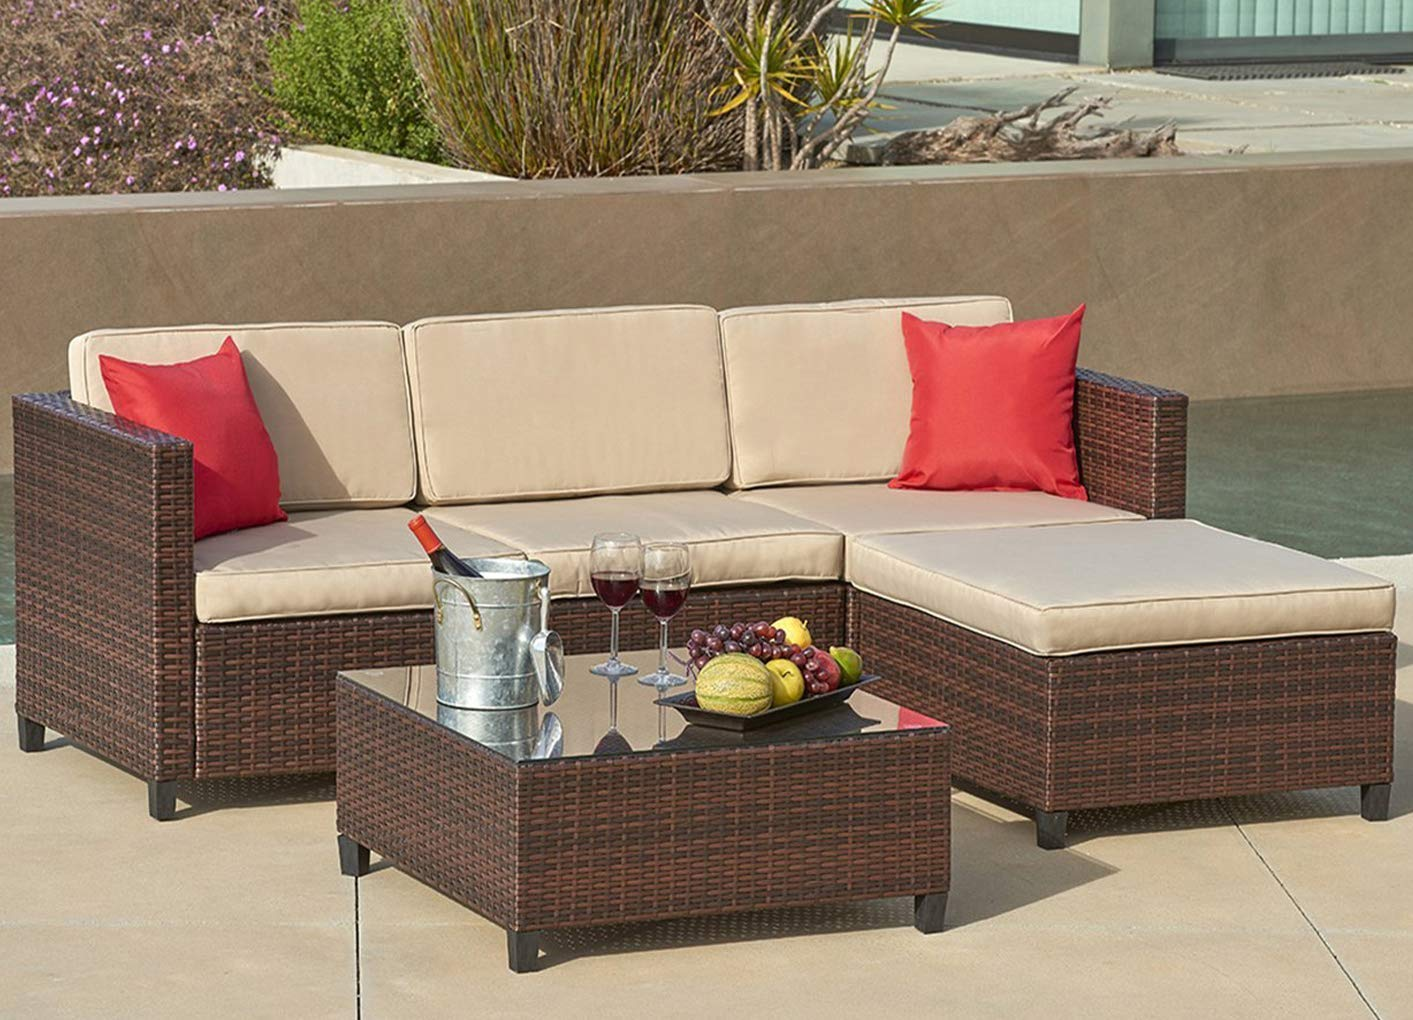 SUNCROWN Outdoor Sectional Sofa (5-Piece Set) All-Weather Brown Checkered Wicker Furniture with Brown Seat Cushions and Modern Glass Coffee Table, Patio, Backyard, Pool - COMFORTABLE SOFA SET - This contemporary outdoor sectional sofa comes with enough room to seat 4-6 friends comfortably with a table to hold food and drinks. All cushion covers contain a zipper and are washable. BEAUTIFUL WICKER STYLE - Crafted with high-quality resin wicker, this outdoor sofa furniture adds handsome décor to your patio, deck, backyard porch, or even pool. ELEGANT GLASS TABLETOP - The checkered wicker sectional set also features a gorgeous tempered glass coffee table that perfectly highlights your patio or poolside decor. - patio-furniture, patio, conversation-sets - 718UWMgkviL -